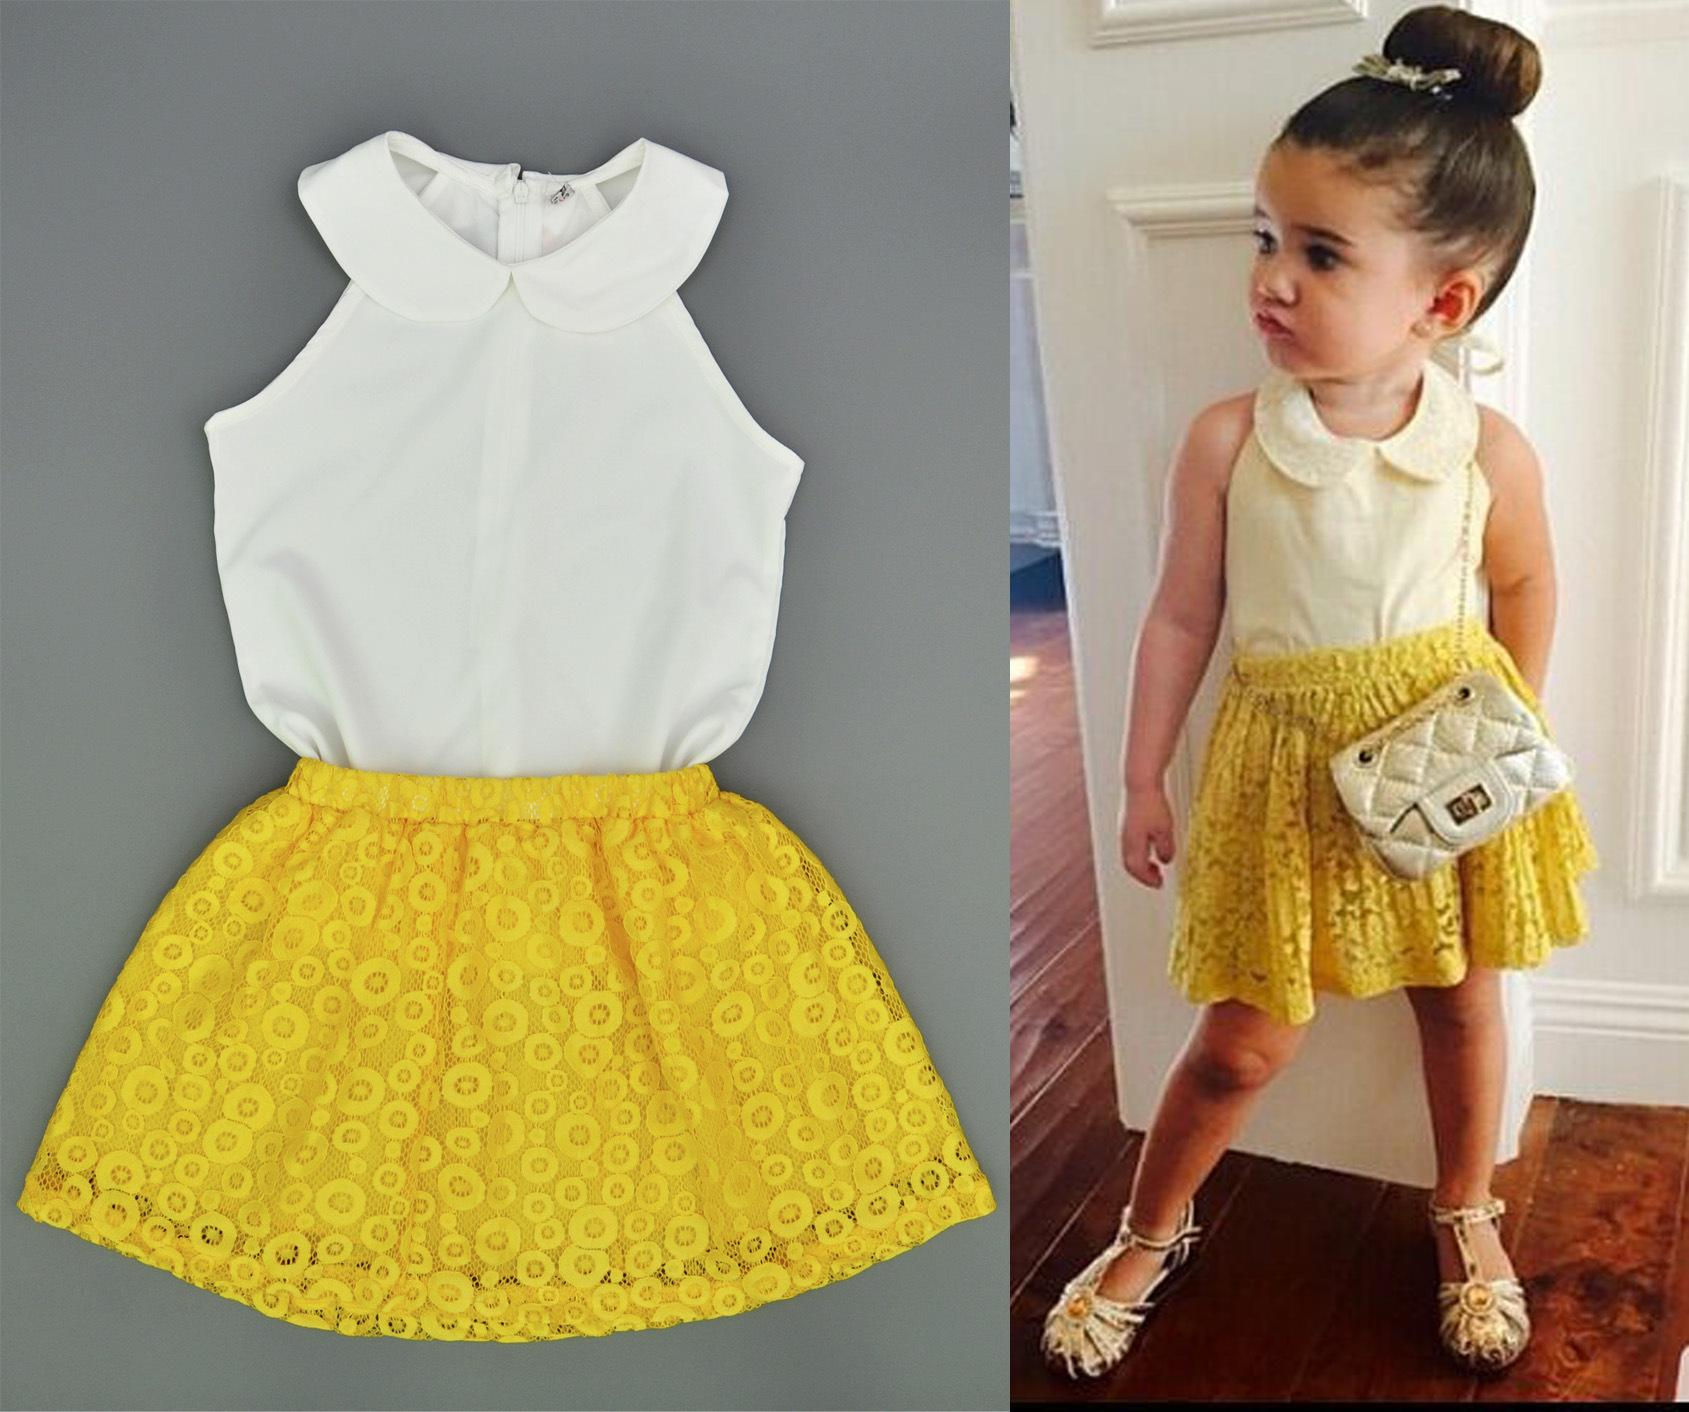 dfeb18e17 2018 Summer Baby Girl Clothes Sets Sleeveless White Chiffon Shirts+Yellow  Lace Skirts 2pcs Kids Clothing Set Boutique Outfits